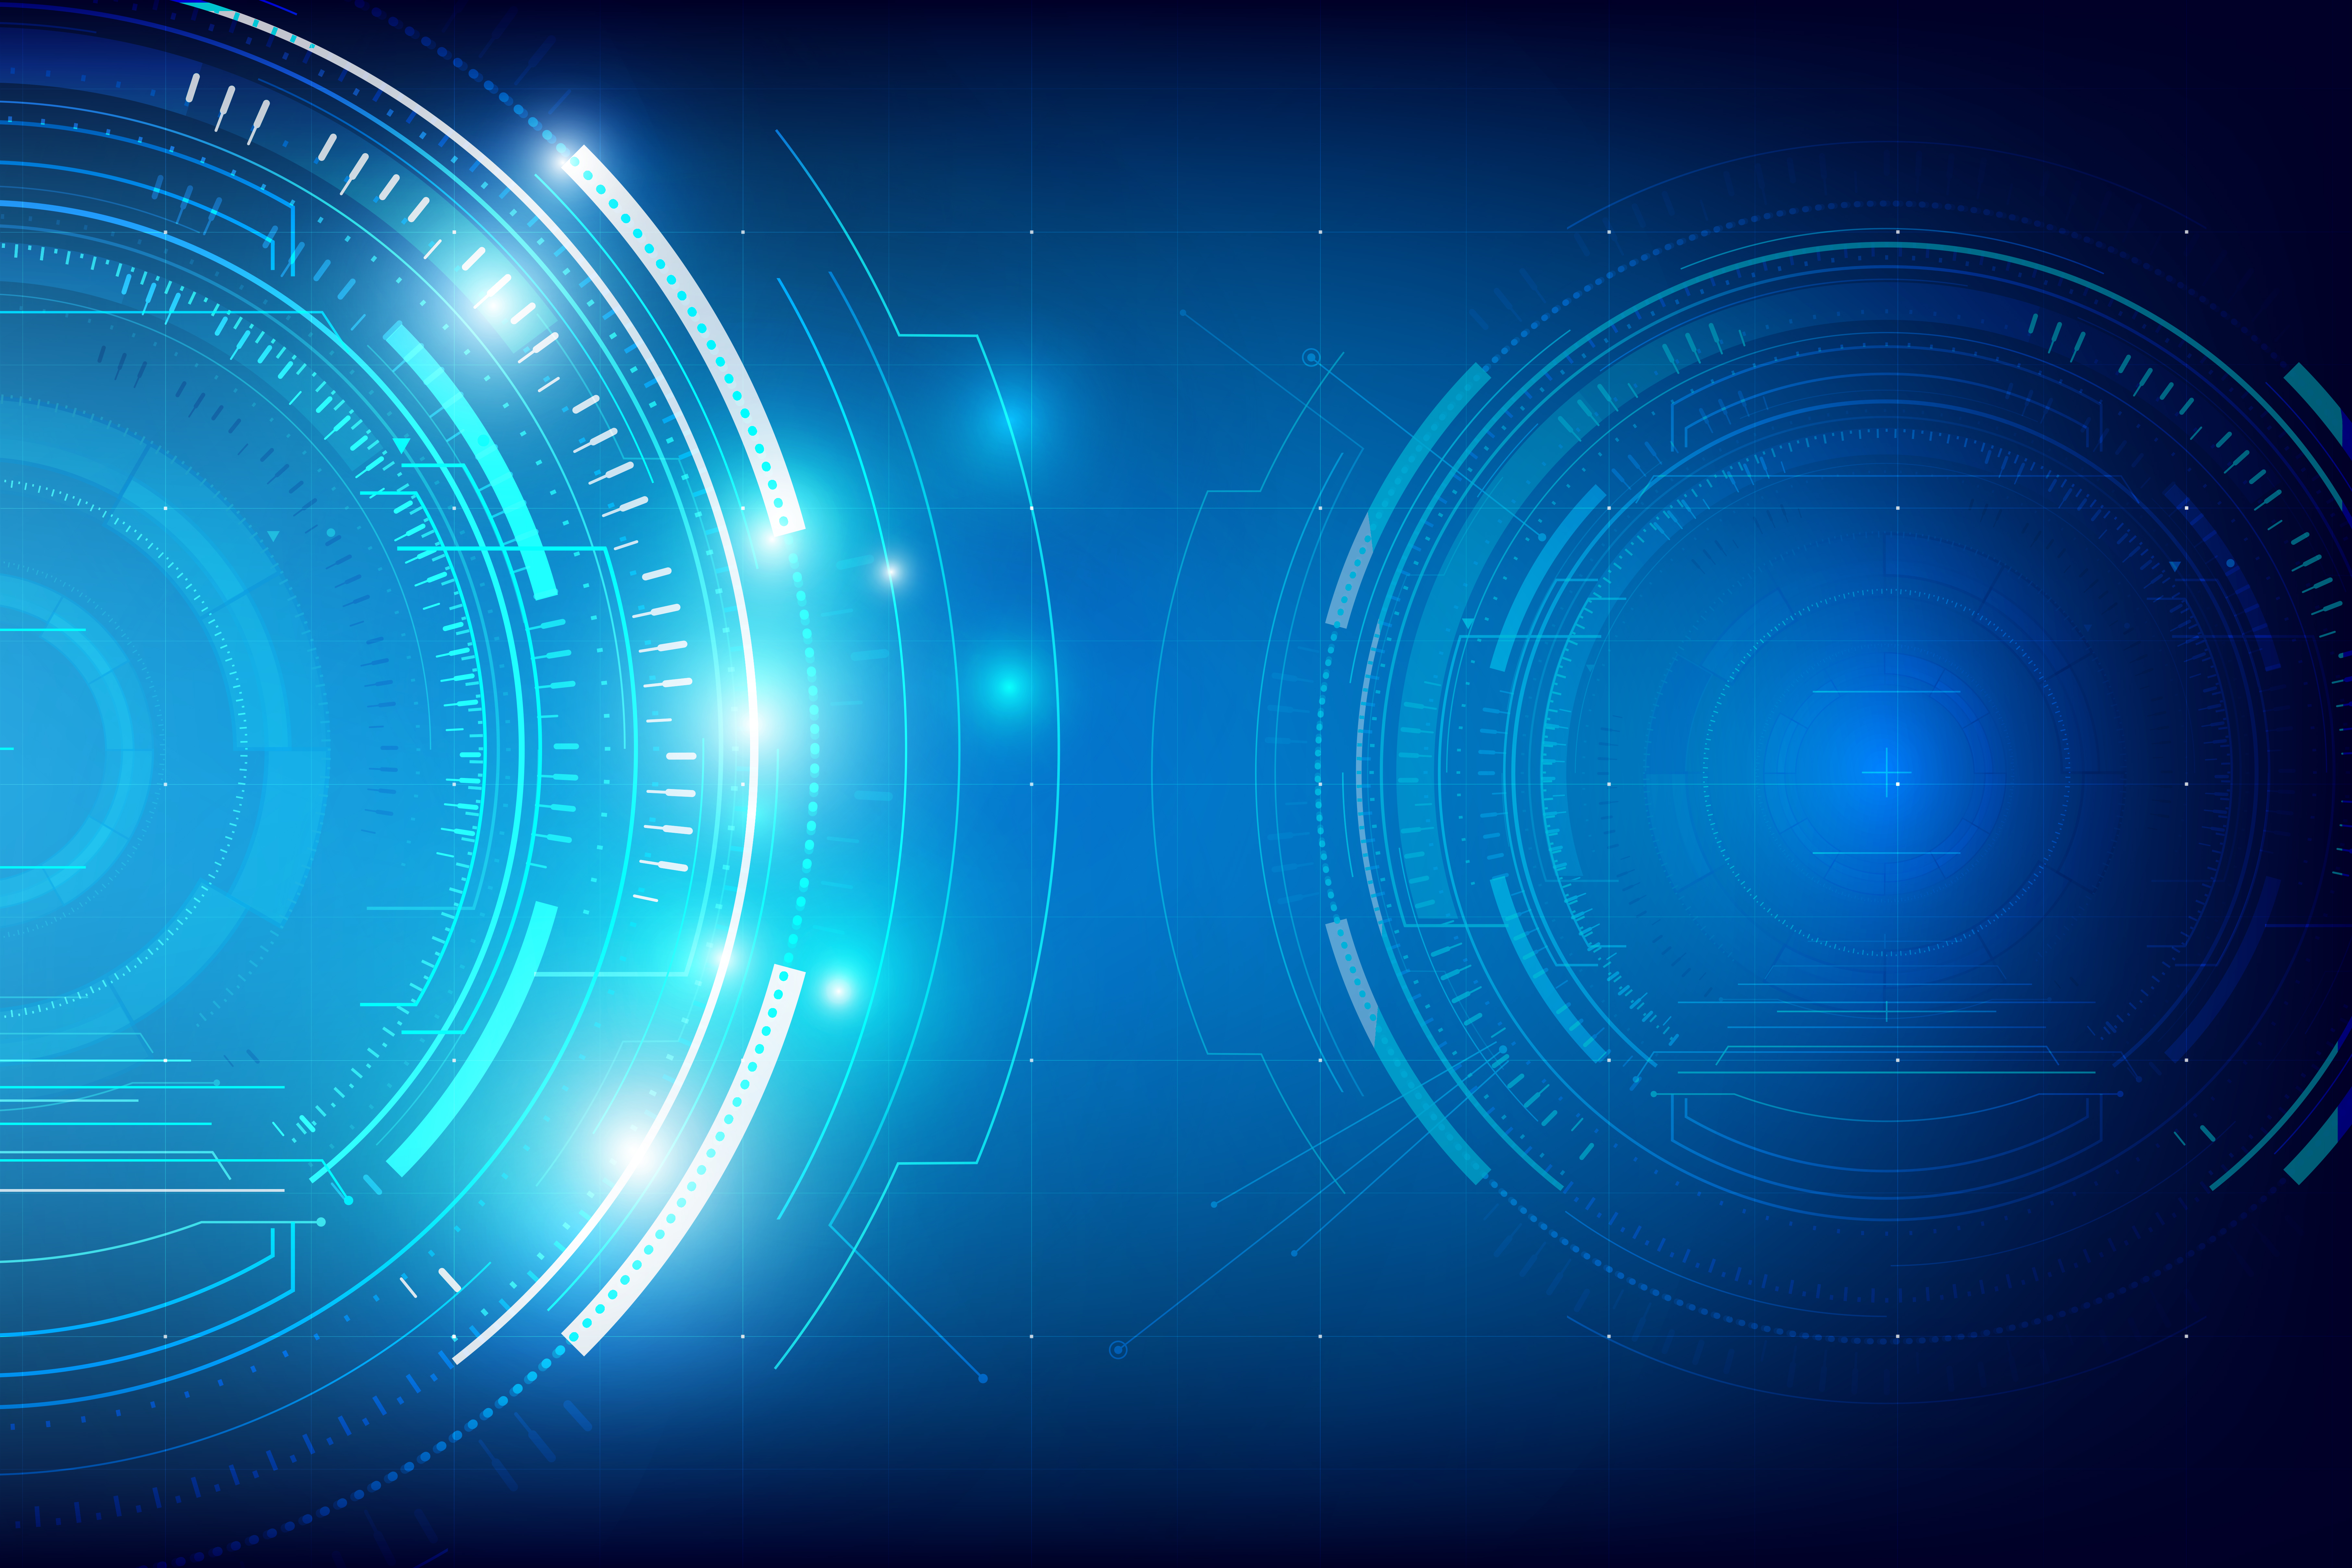 Abstract Technology Wallpaper Group With 78 Items: Abstract HUD Technology Background 006